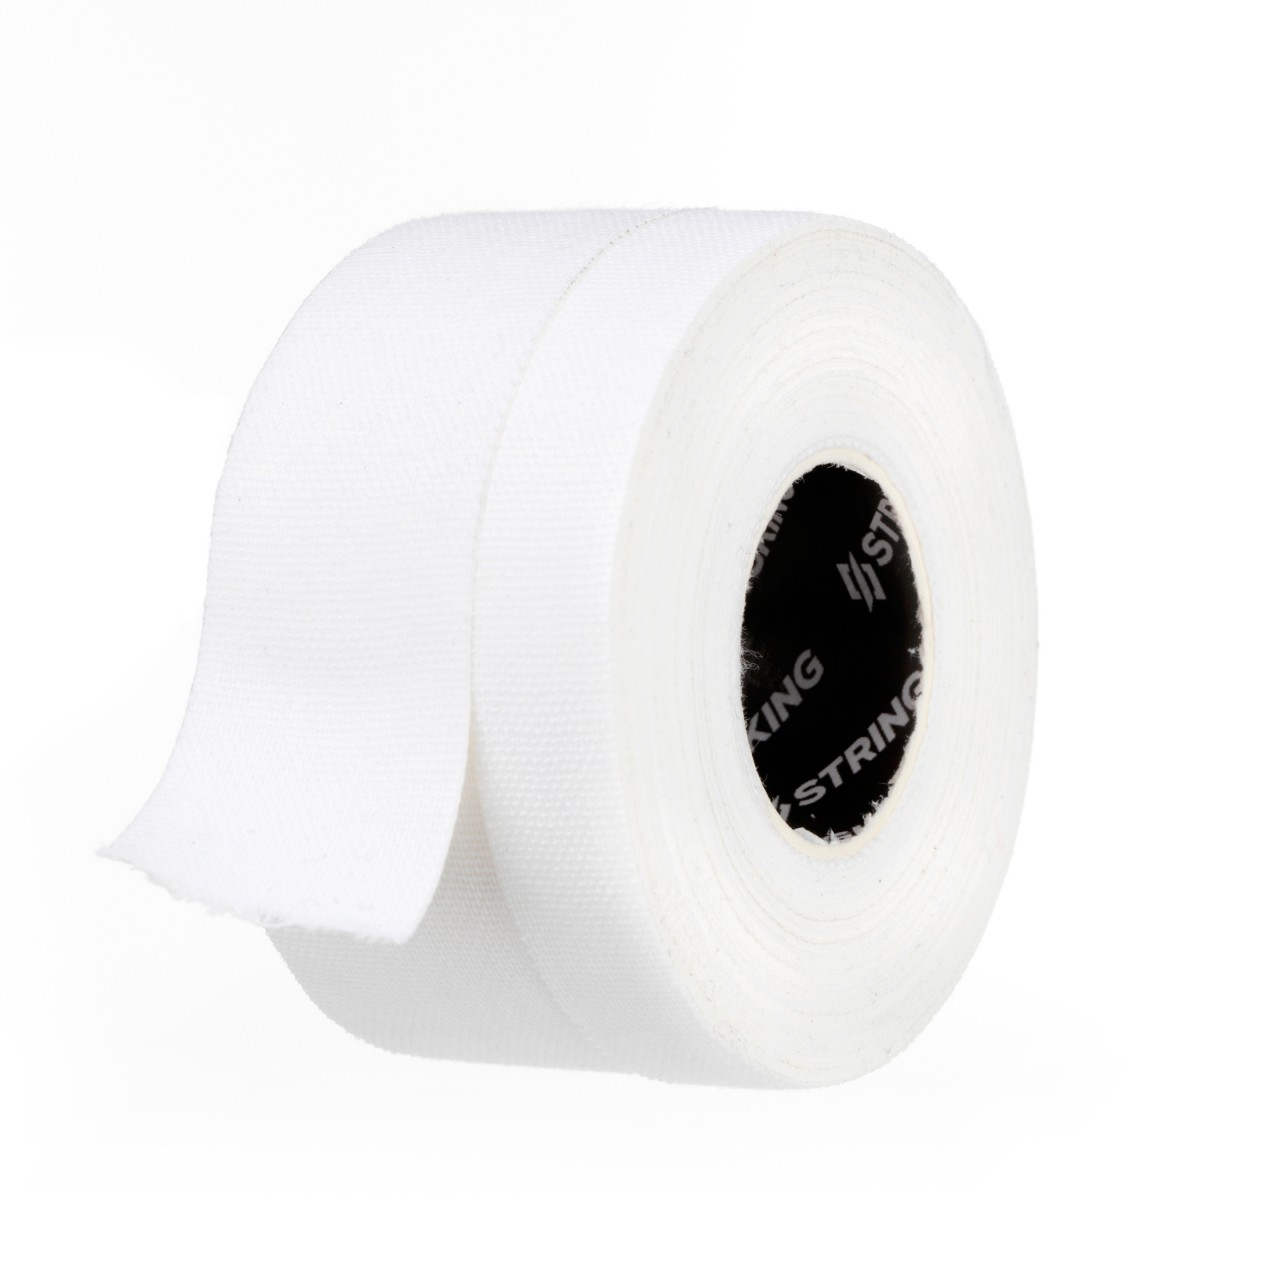 StringKing Lacrosse Accessories Lacrosse Shaft Tape - White